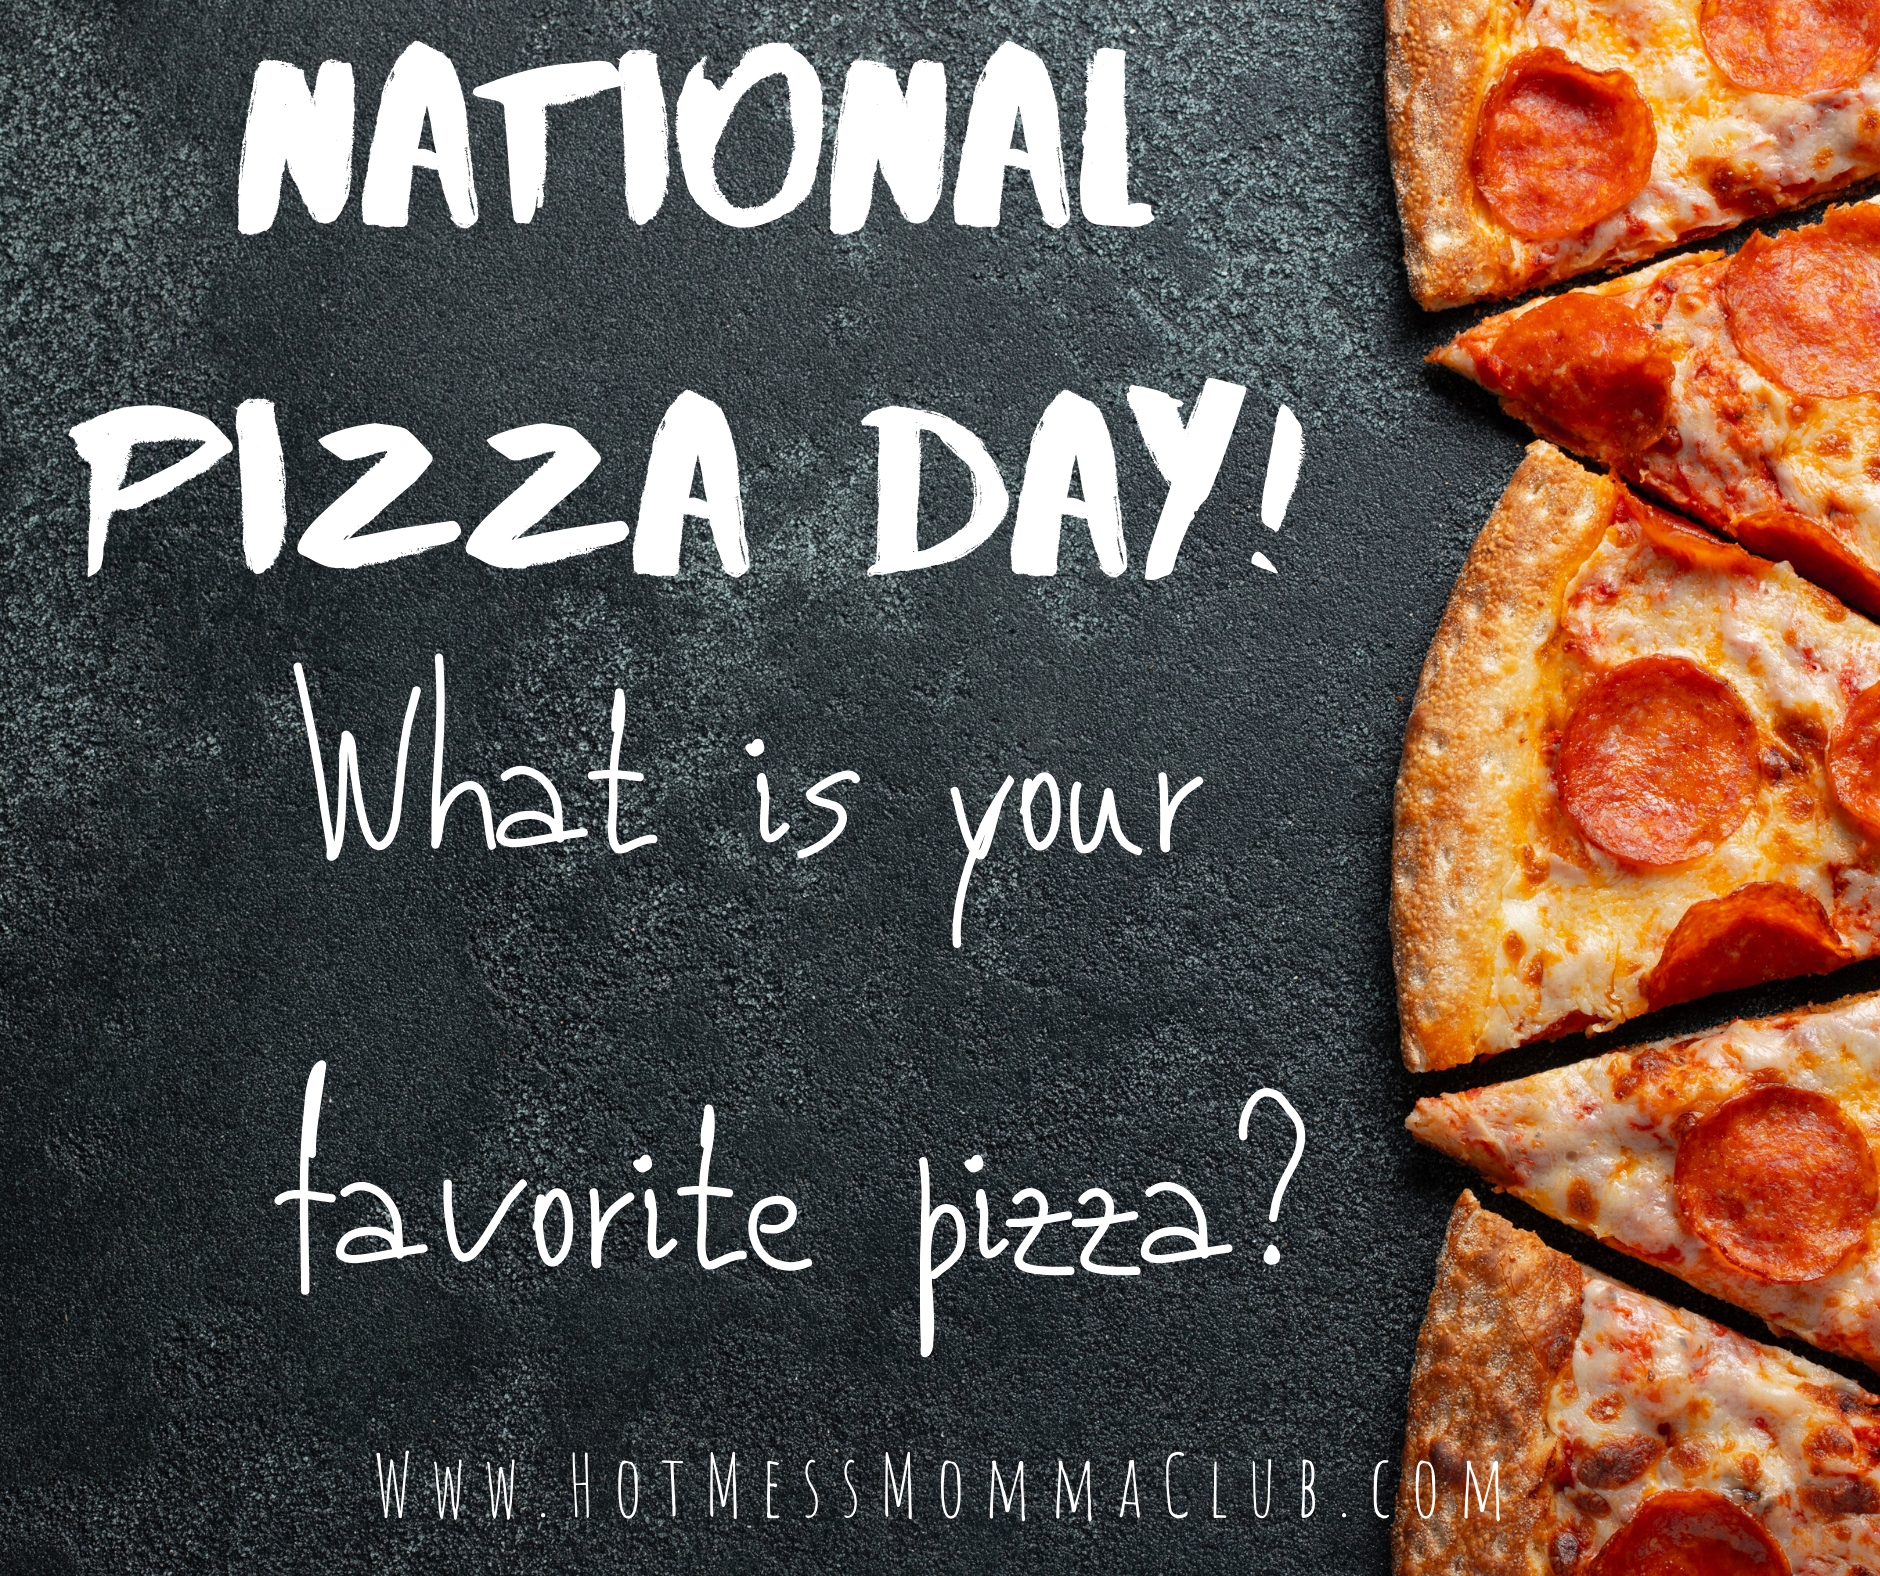 National Pizza Day Graphic National Pizza Pizza Day Favourite Pizza